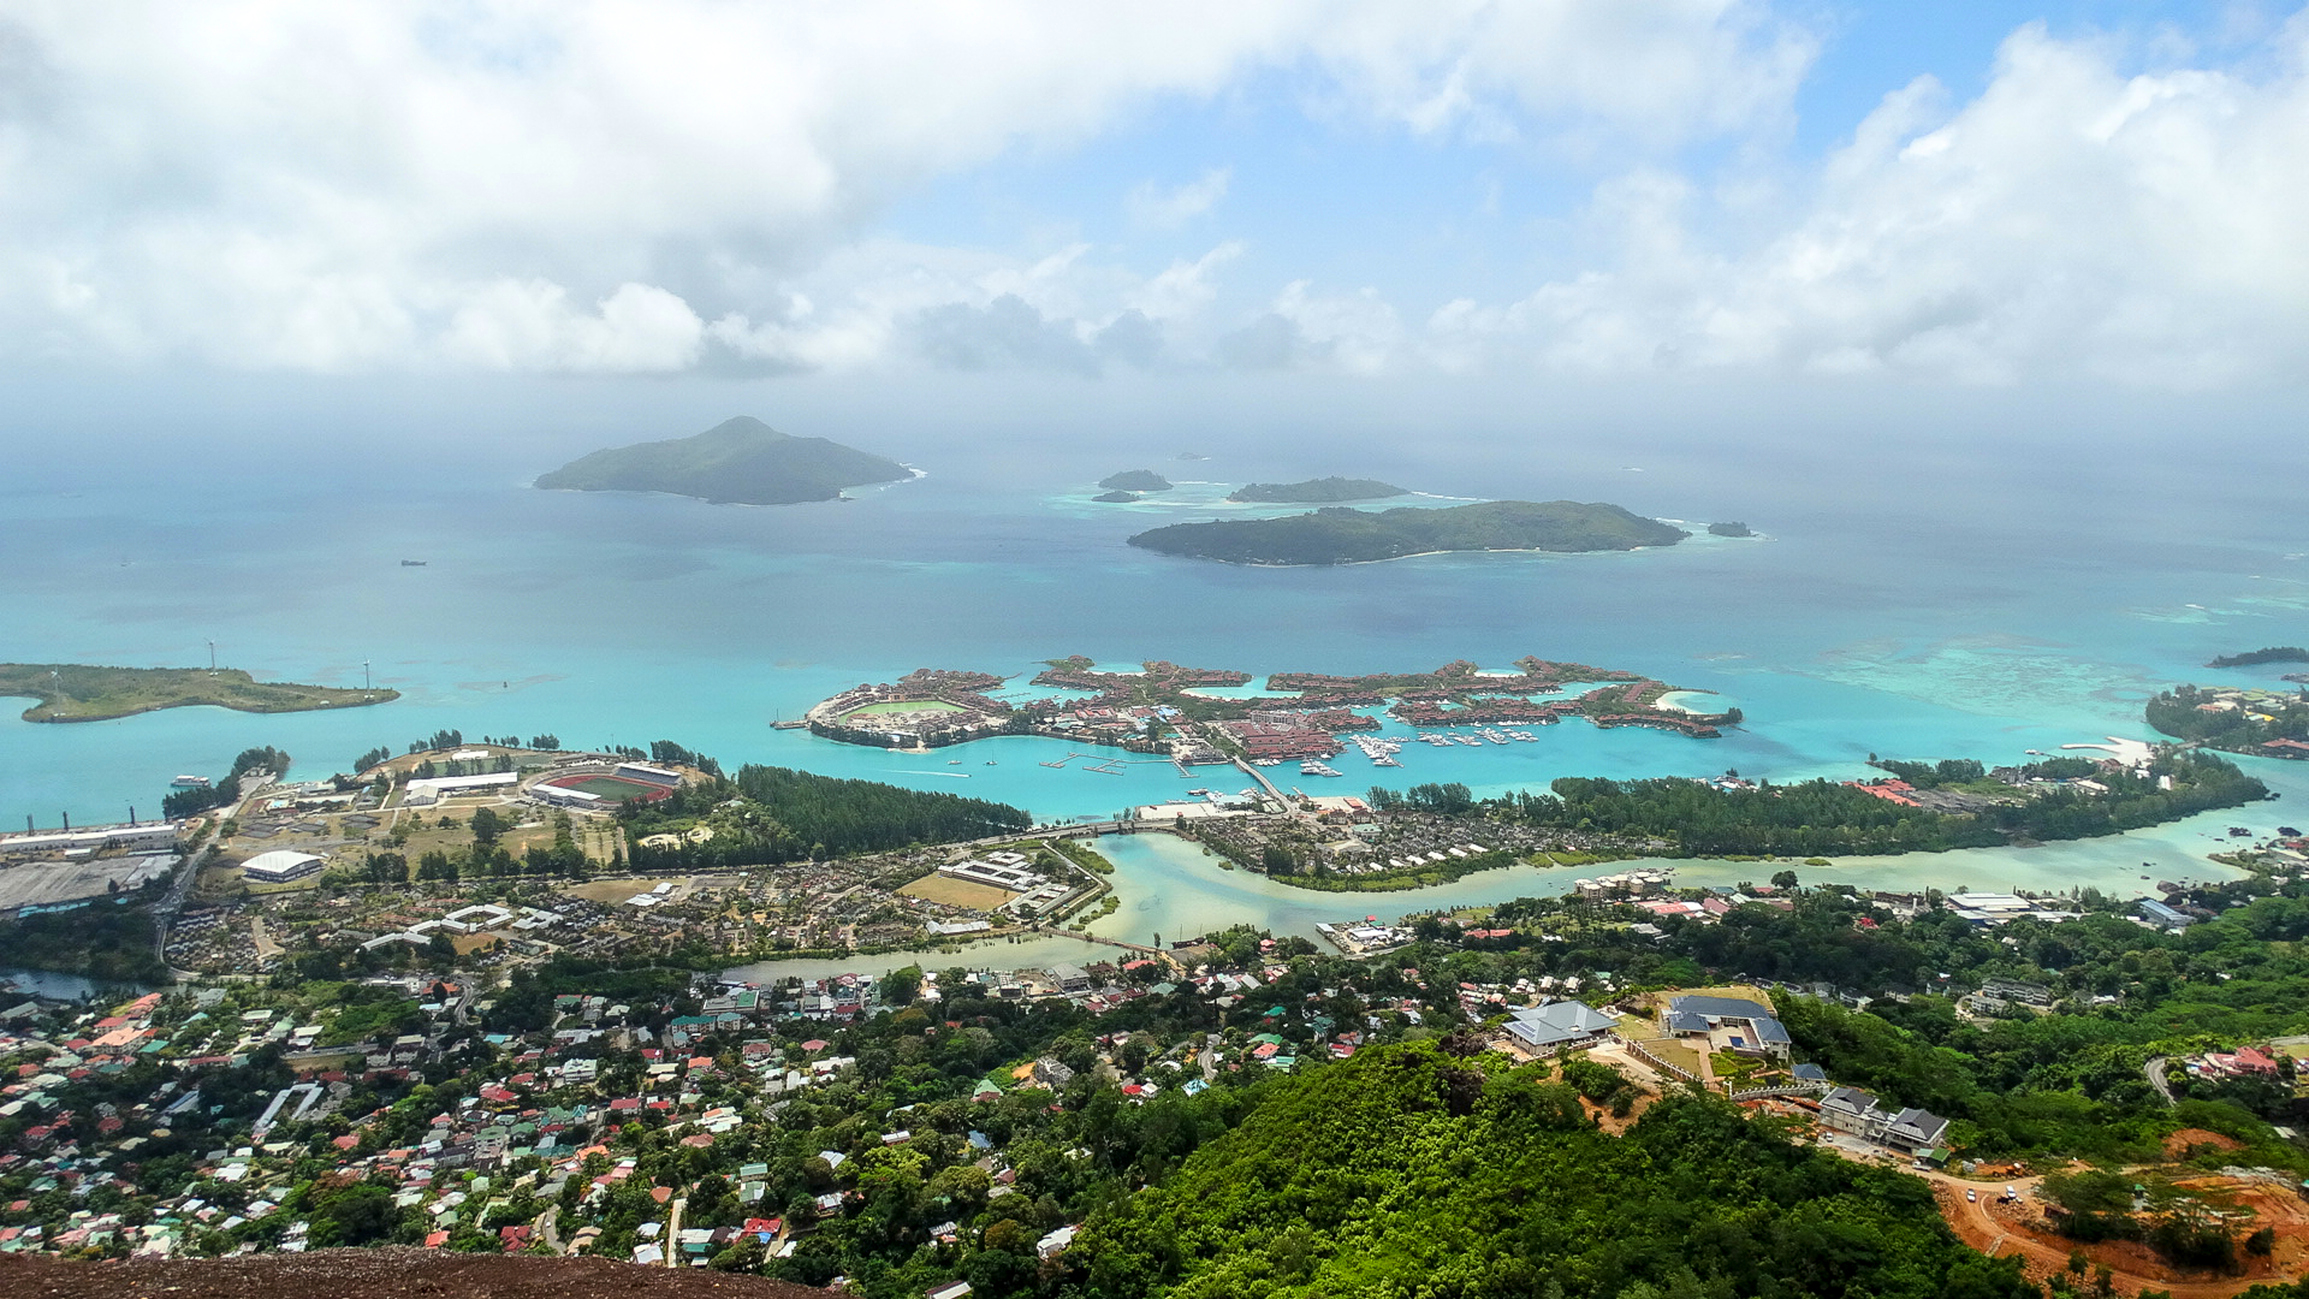 View of Seychelles islands